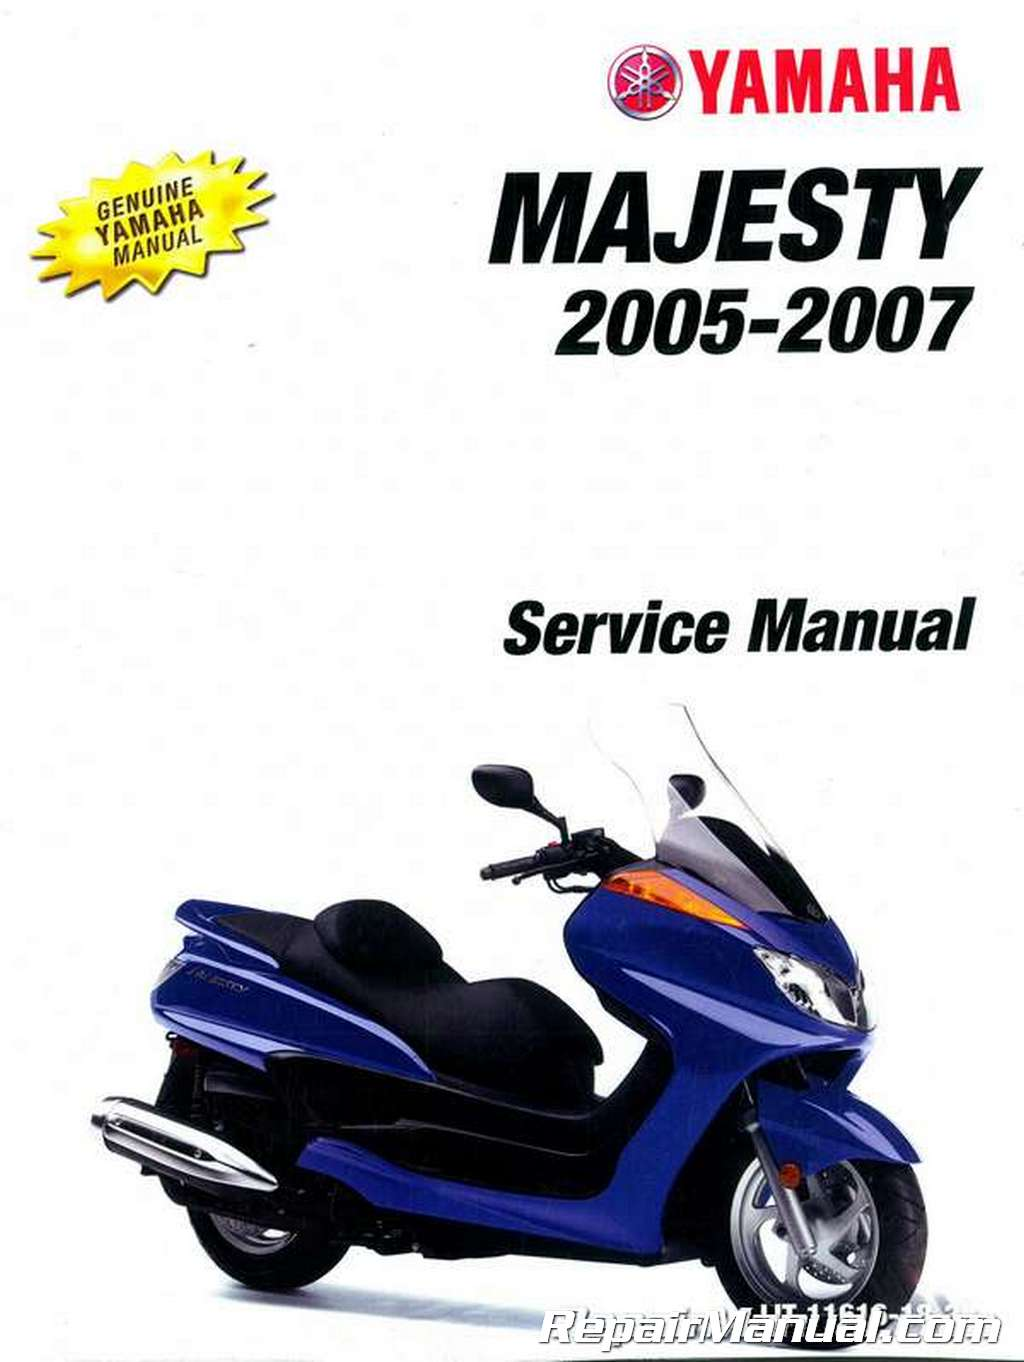 2005 2007 yamaha majesty scooter yp400t yp400v yp400w service manual rh repairmanual com Yamaha 150Cc Scooter Yamaha Scooter 250Cc